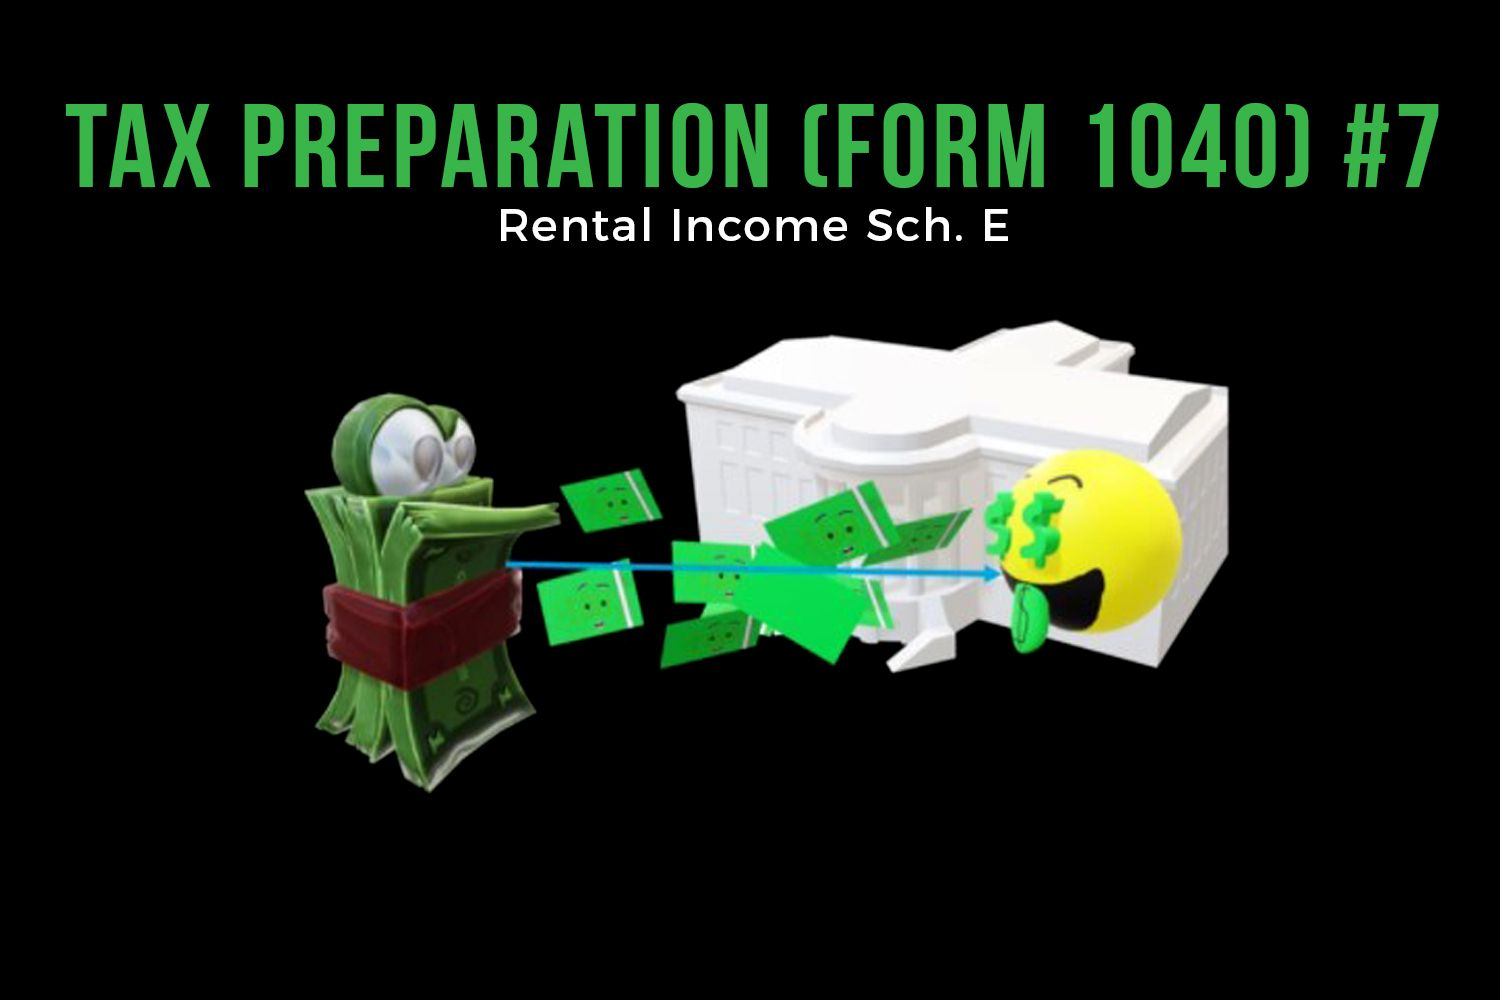 Learn about taxation related to rental income